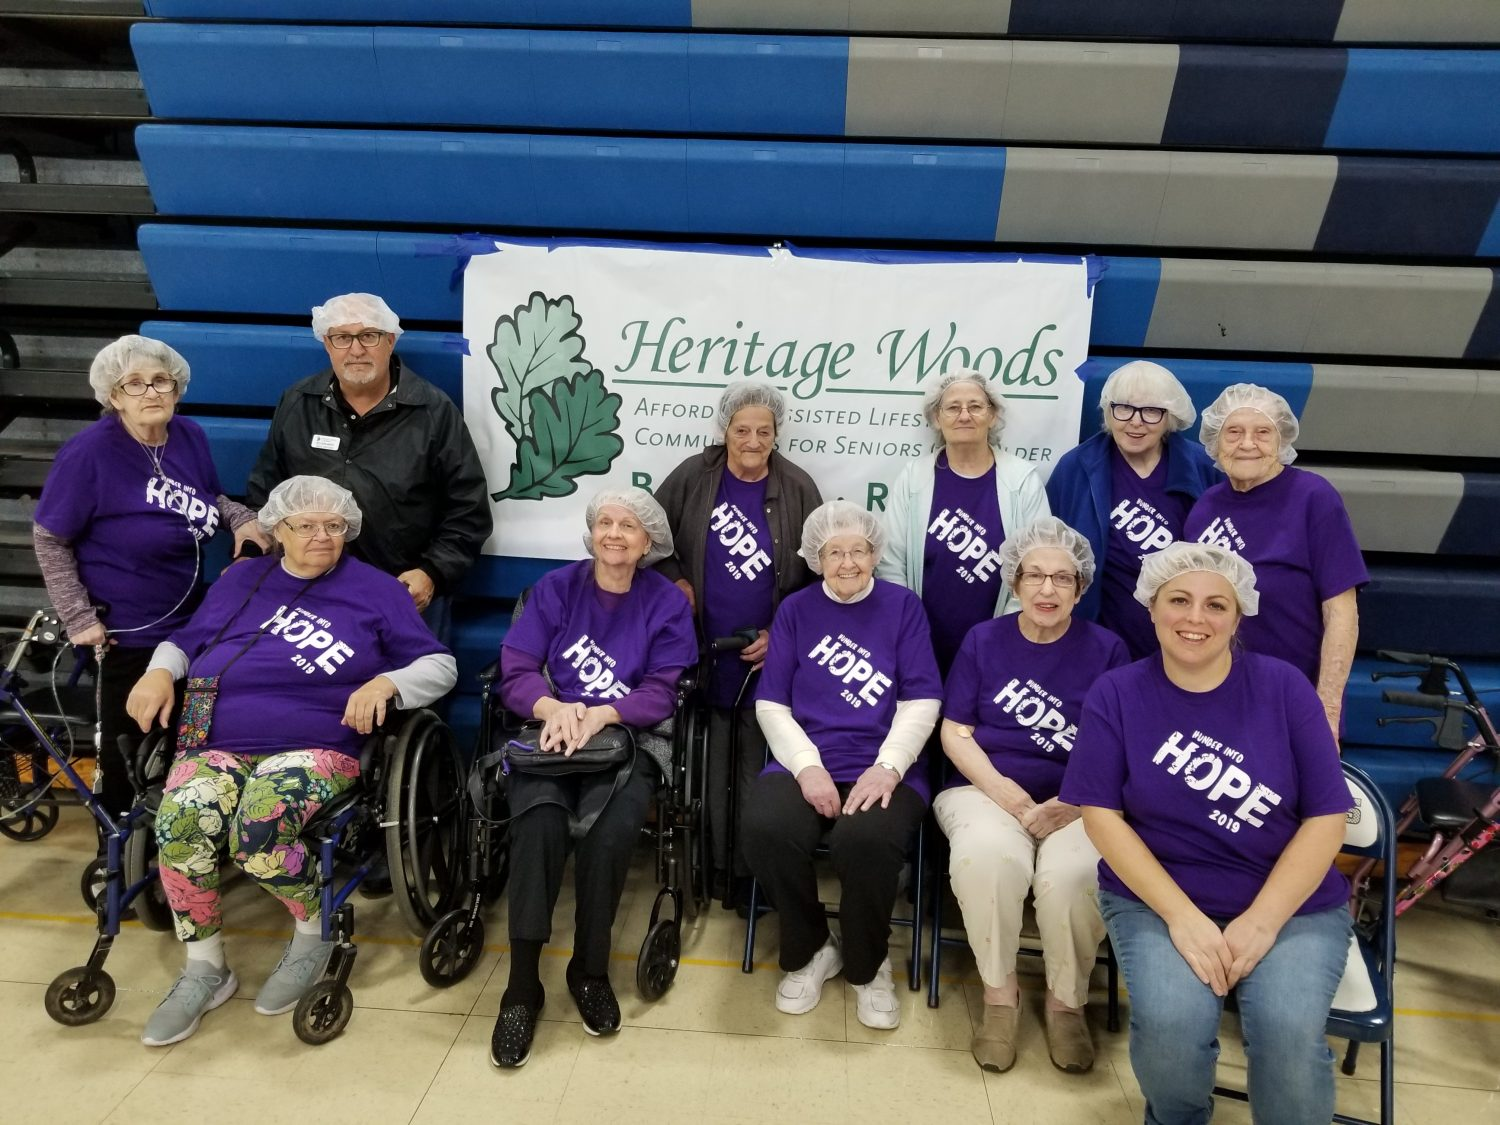 Volunteering Gives Heritage Woods Residents Purpose